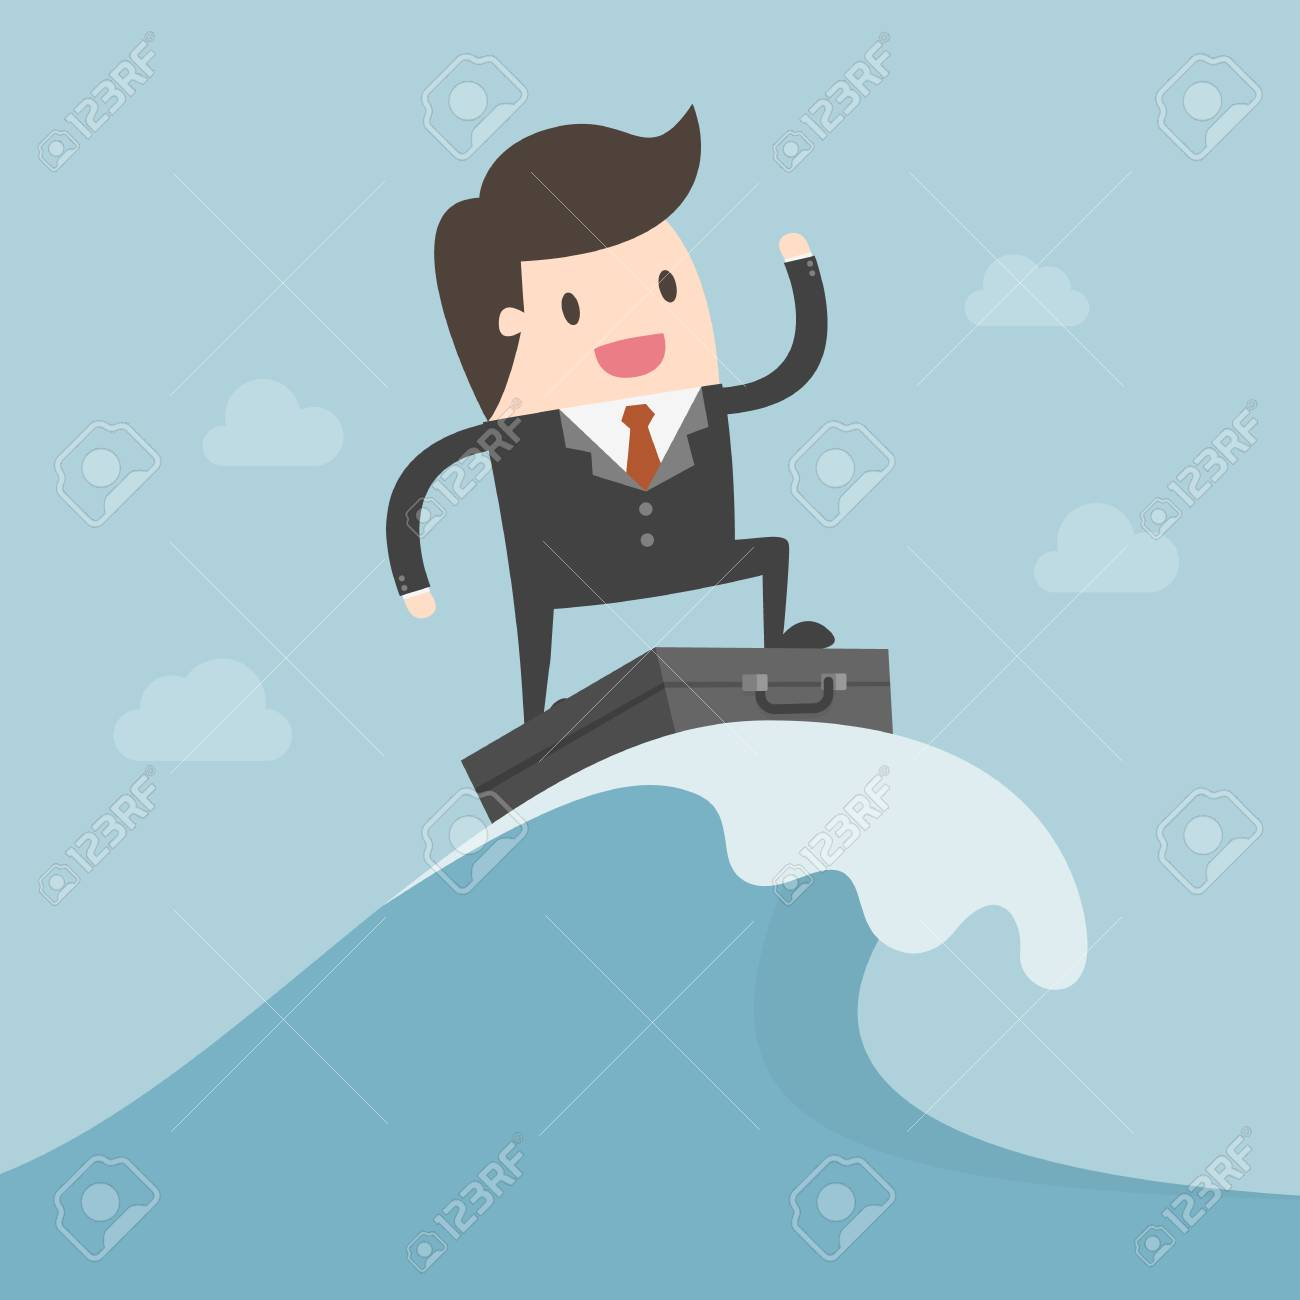 Businessman Surfing On The Wave. Business Concept Illustration. - 82990973